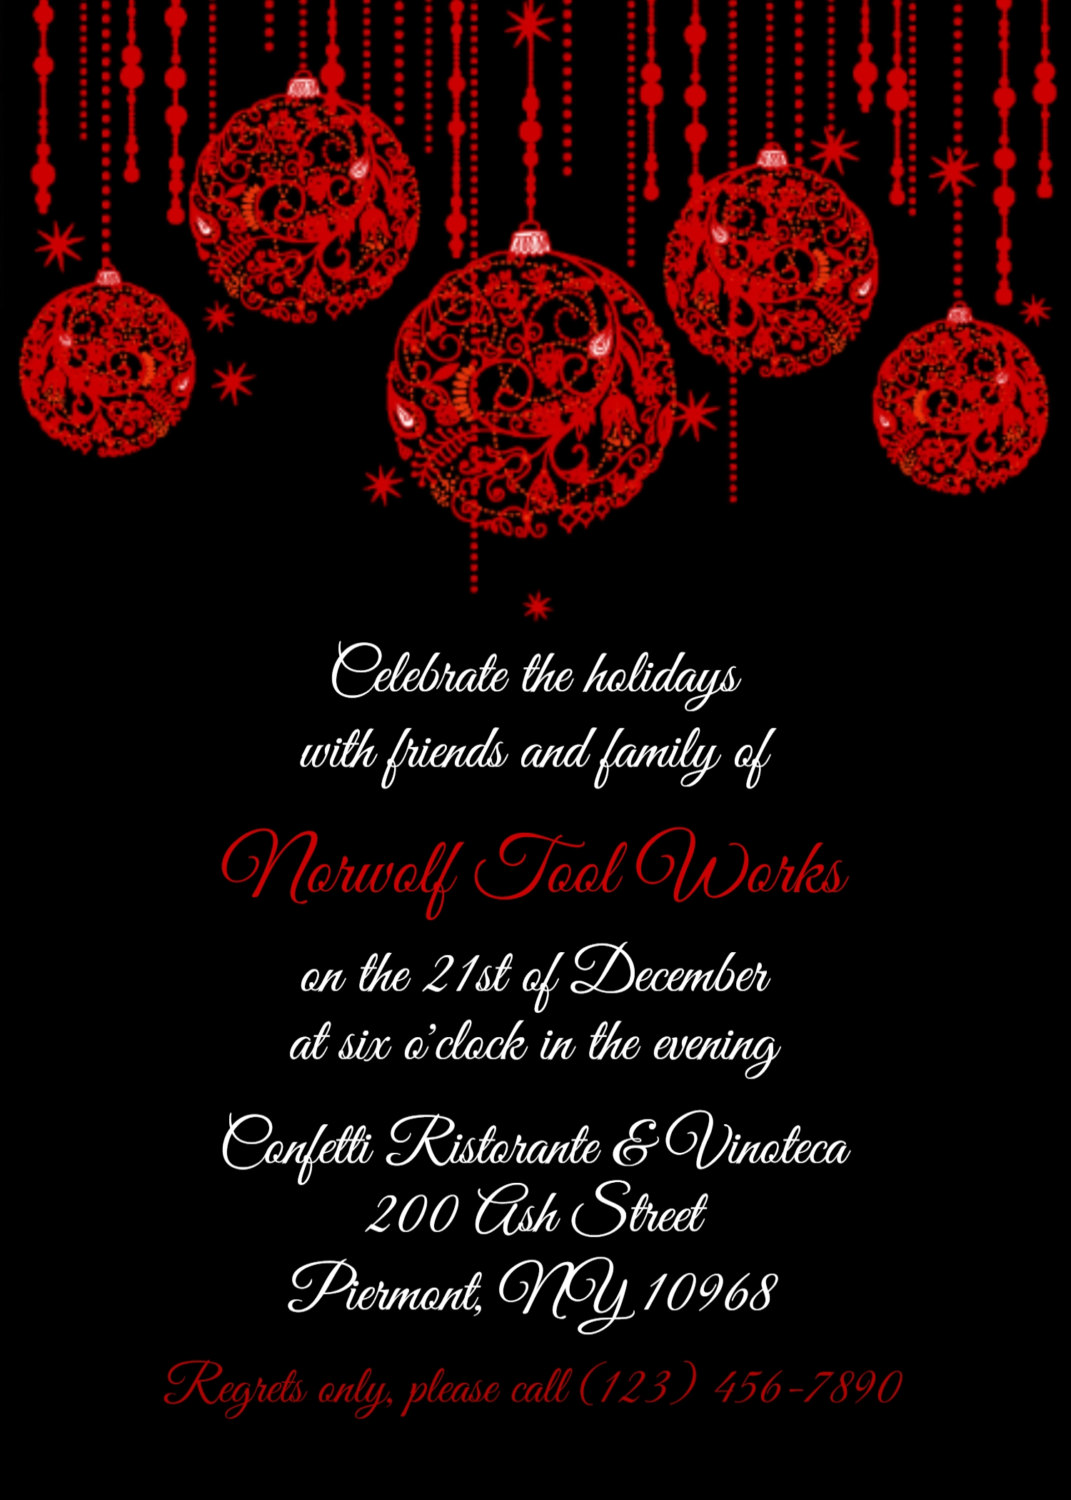 doc christmas office party invitation templates office invitation for holiday party mickey mouse invitations templates christmas office party invitation templates